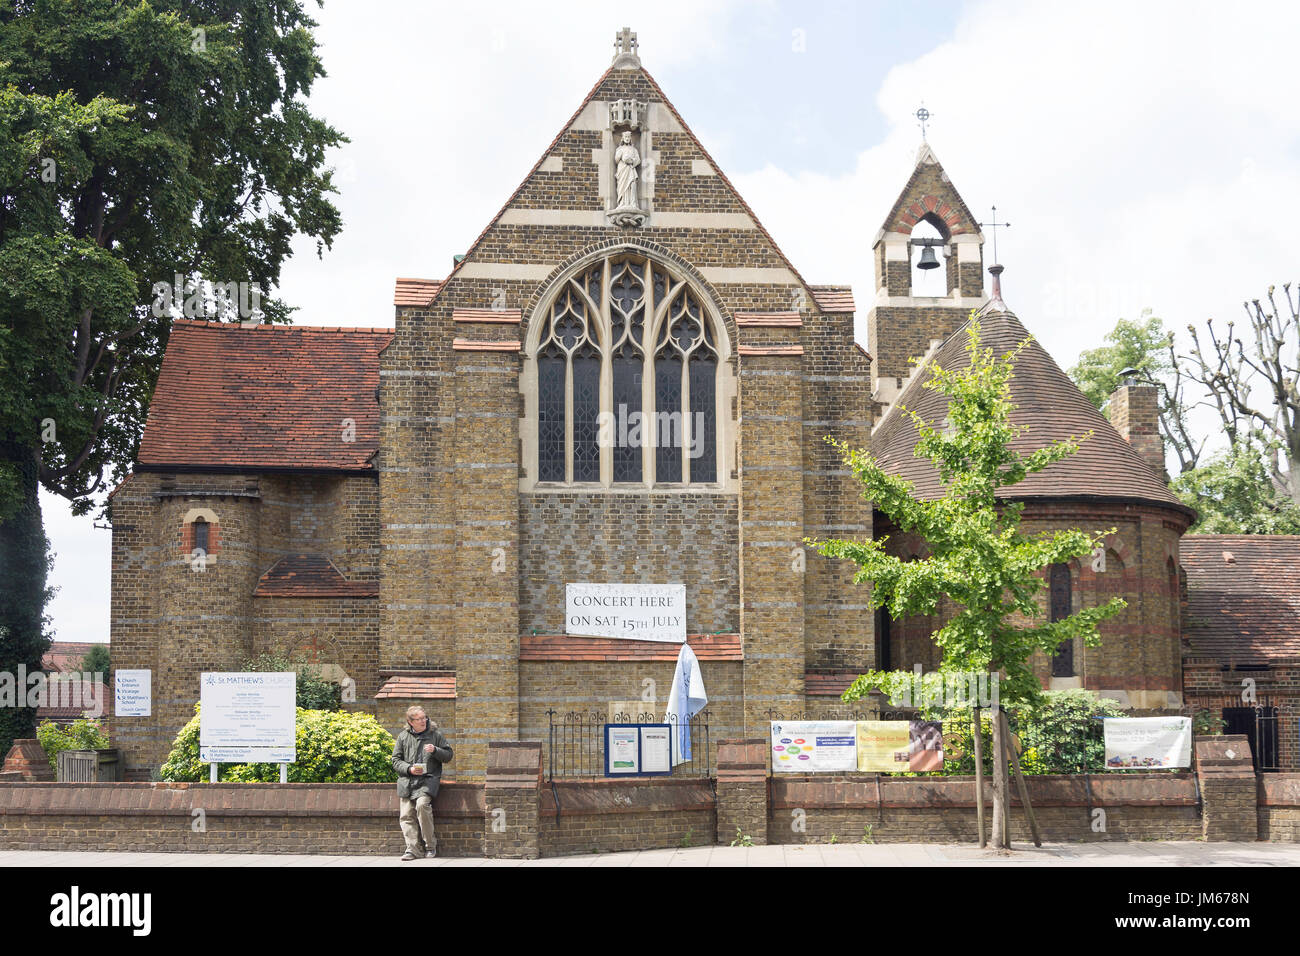 St. Matthew's Church, High Street, Yiewsley, London Borough of Hillingdon, Greater London, England, United Kingdom - Stock Image